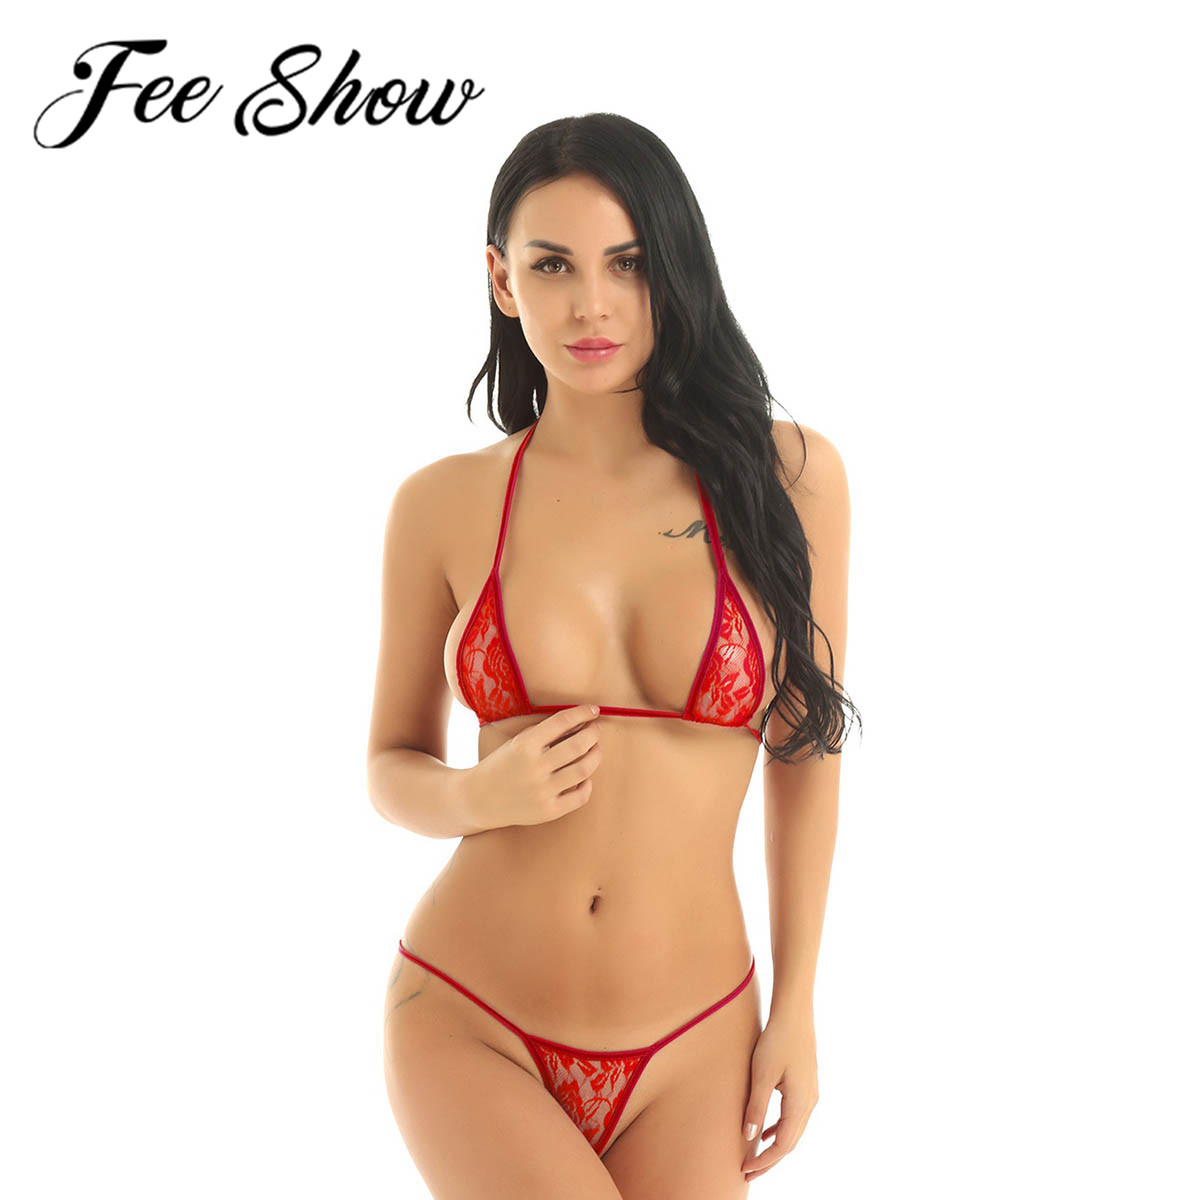 Sexy Female Erotic Minimal Mini Micro Bikini Swimsuit Lingerie Swimwear Beachwear Perspective Bra Top & G-String Brief Underwear